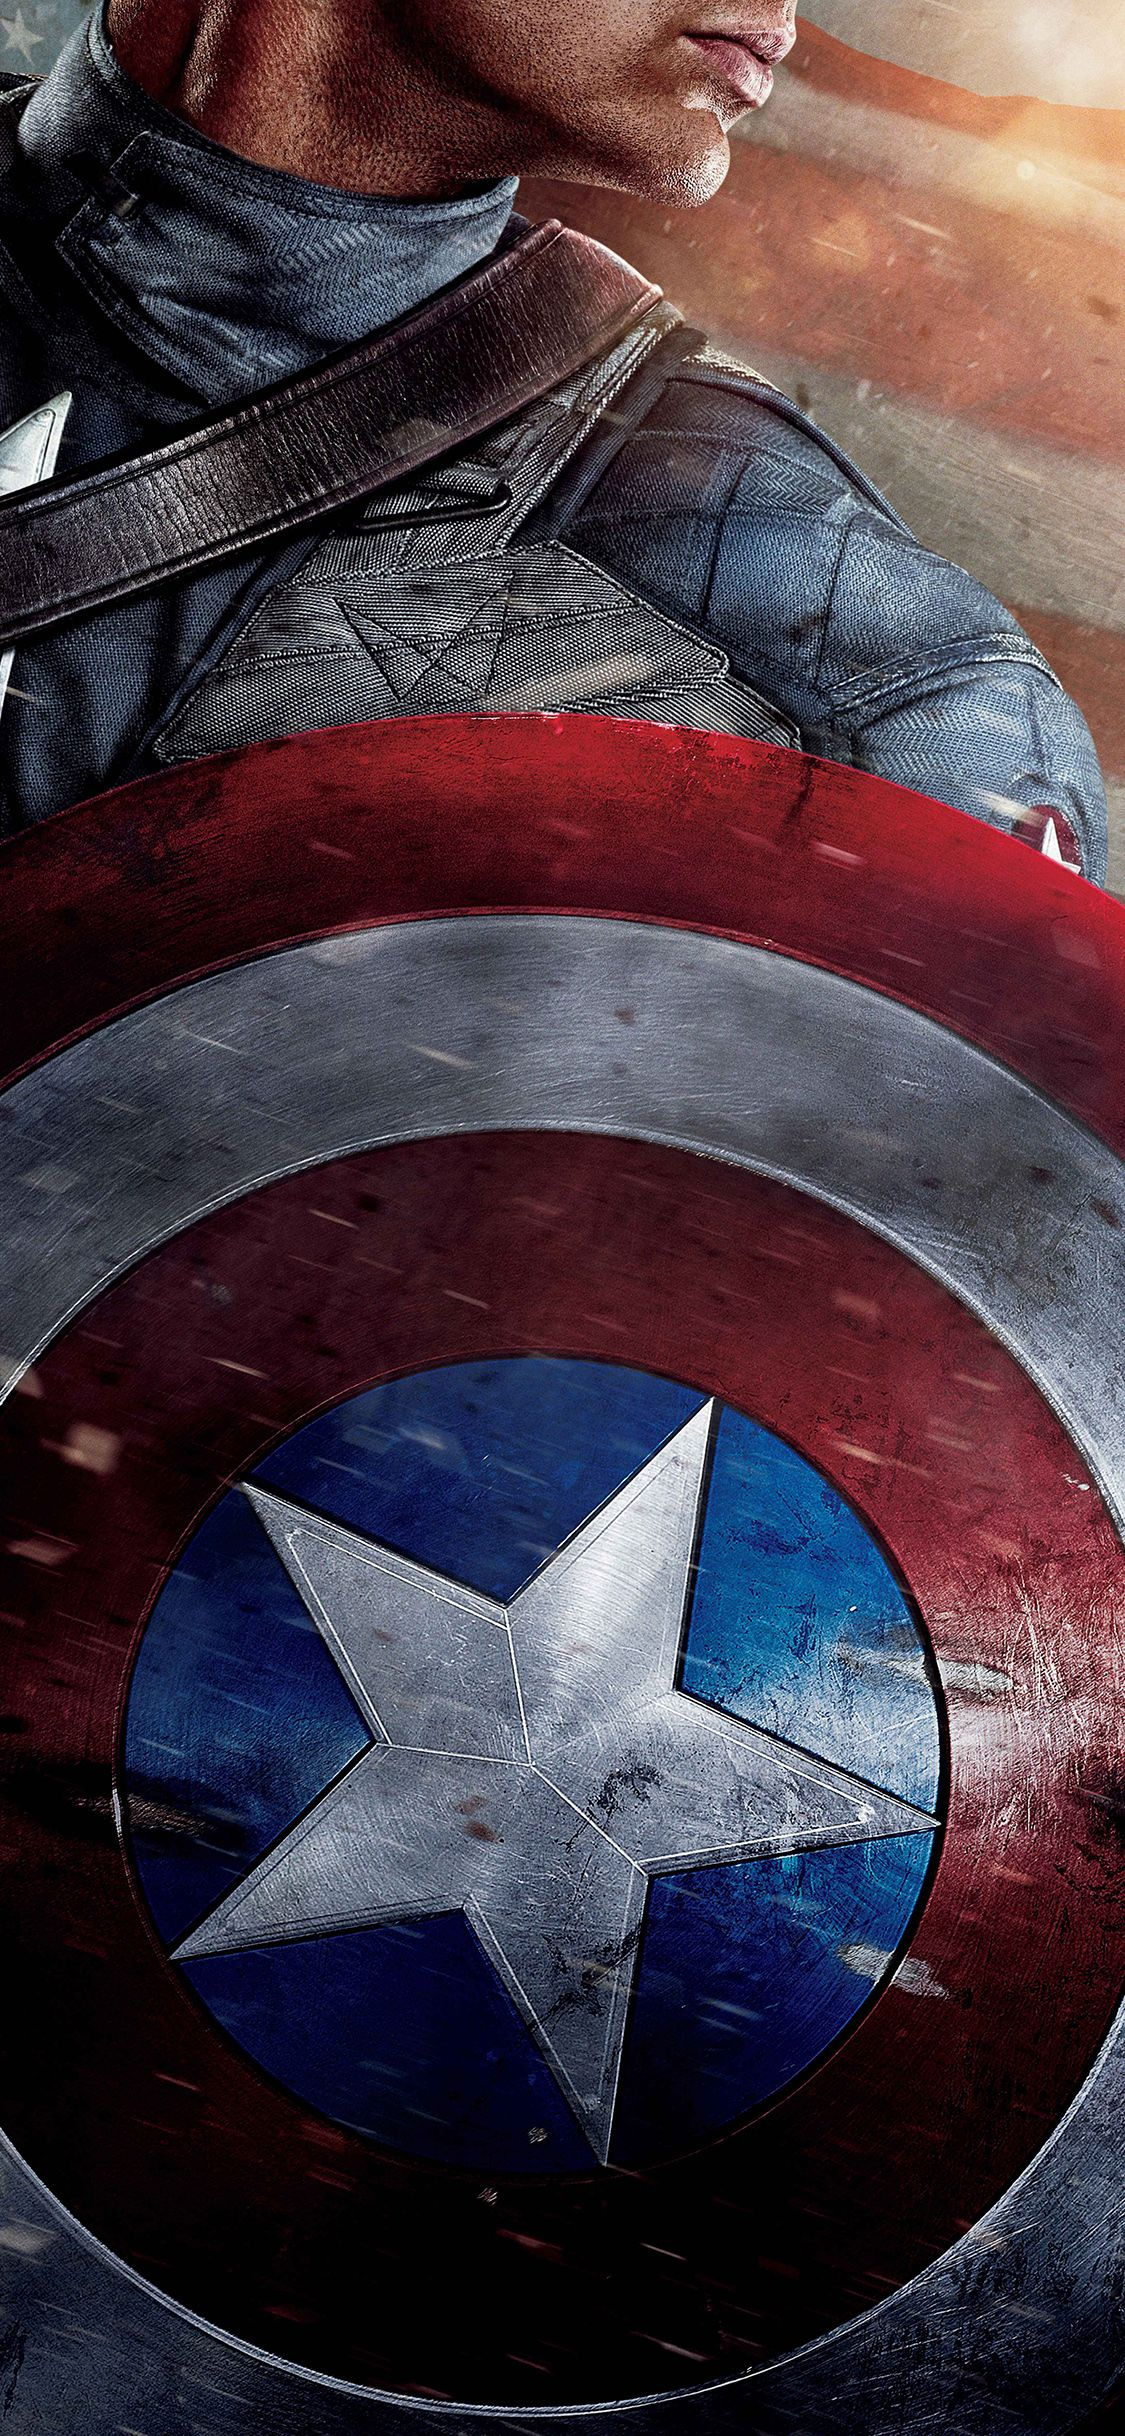 Captain America Iphone Wallpapers Top Free Captain America Iphone